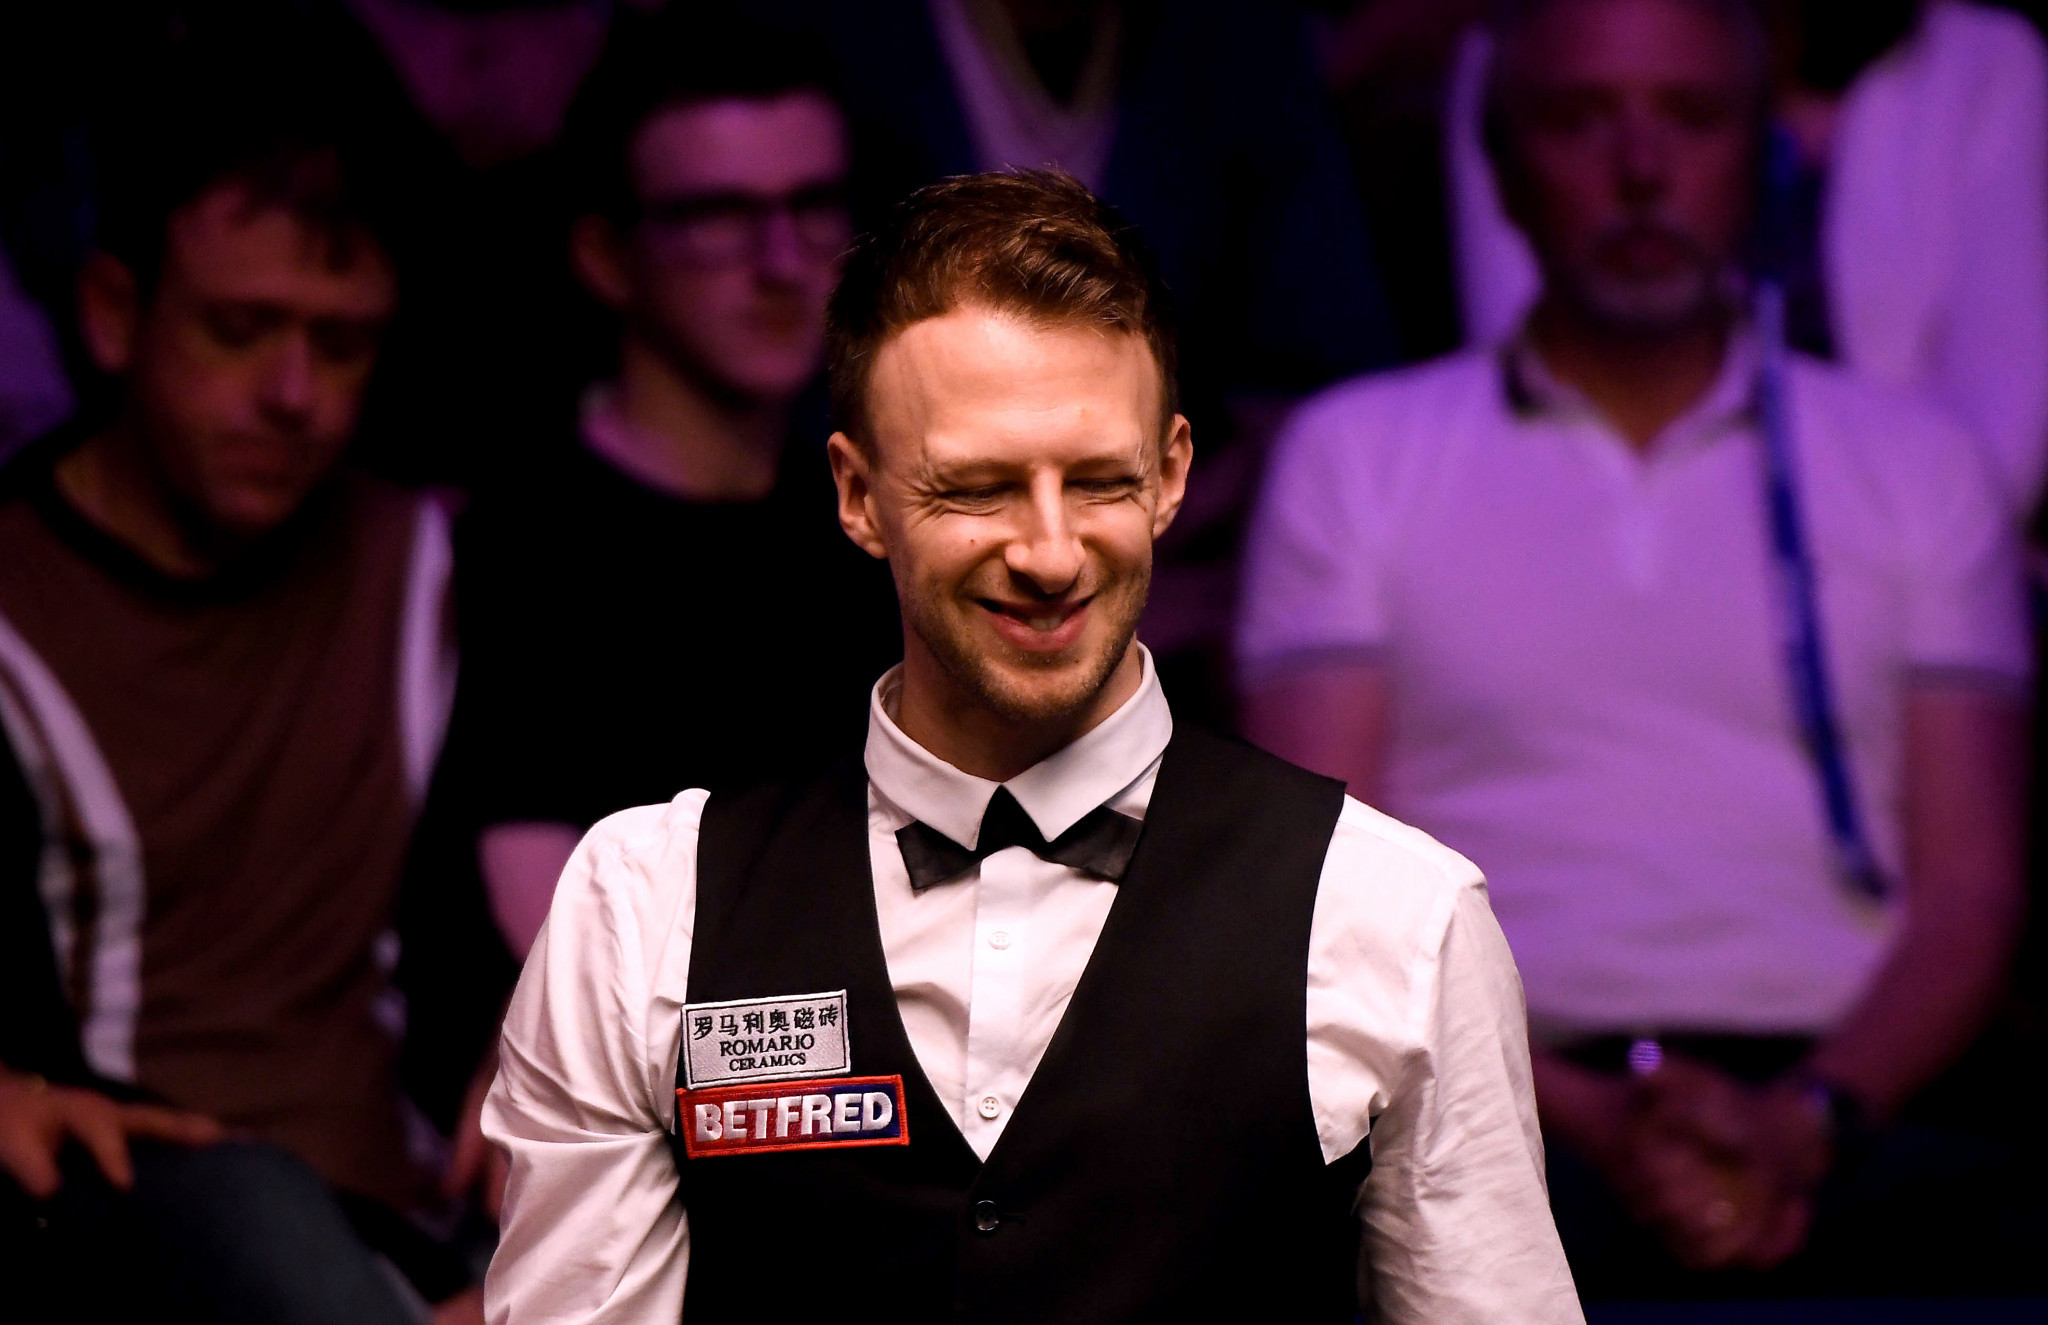 Trump wins six frames in a row against Ding to earn World Snooker Championships quarter-final place